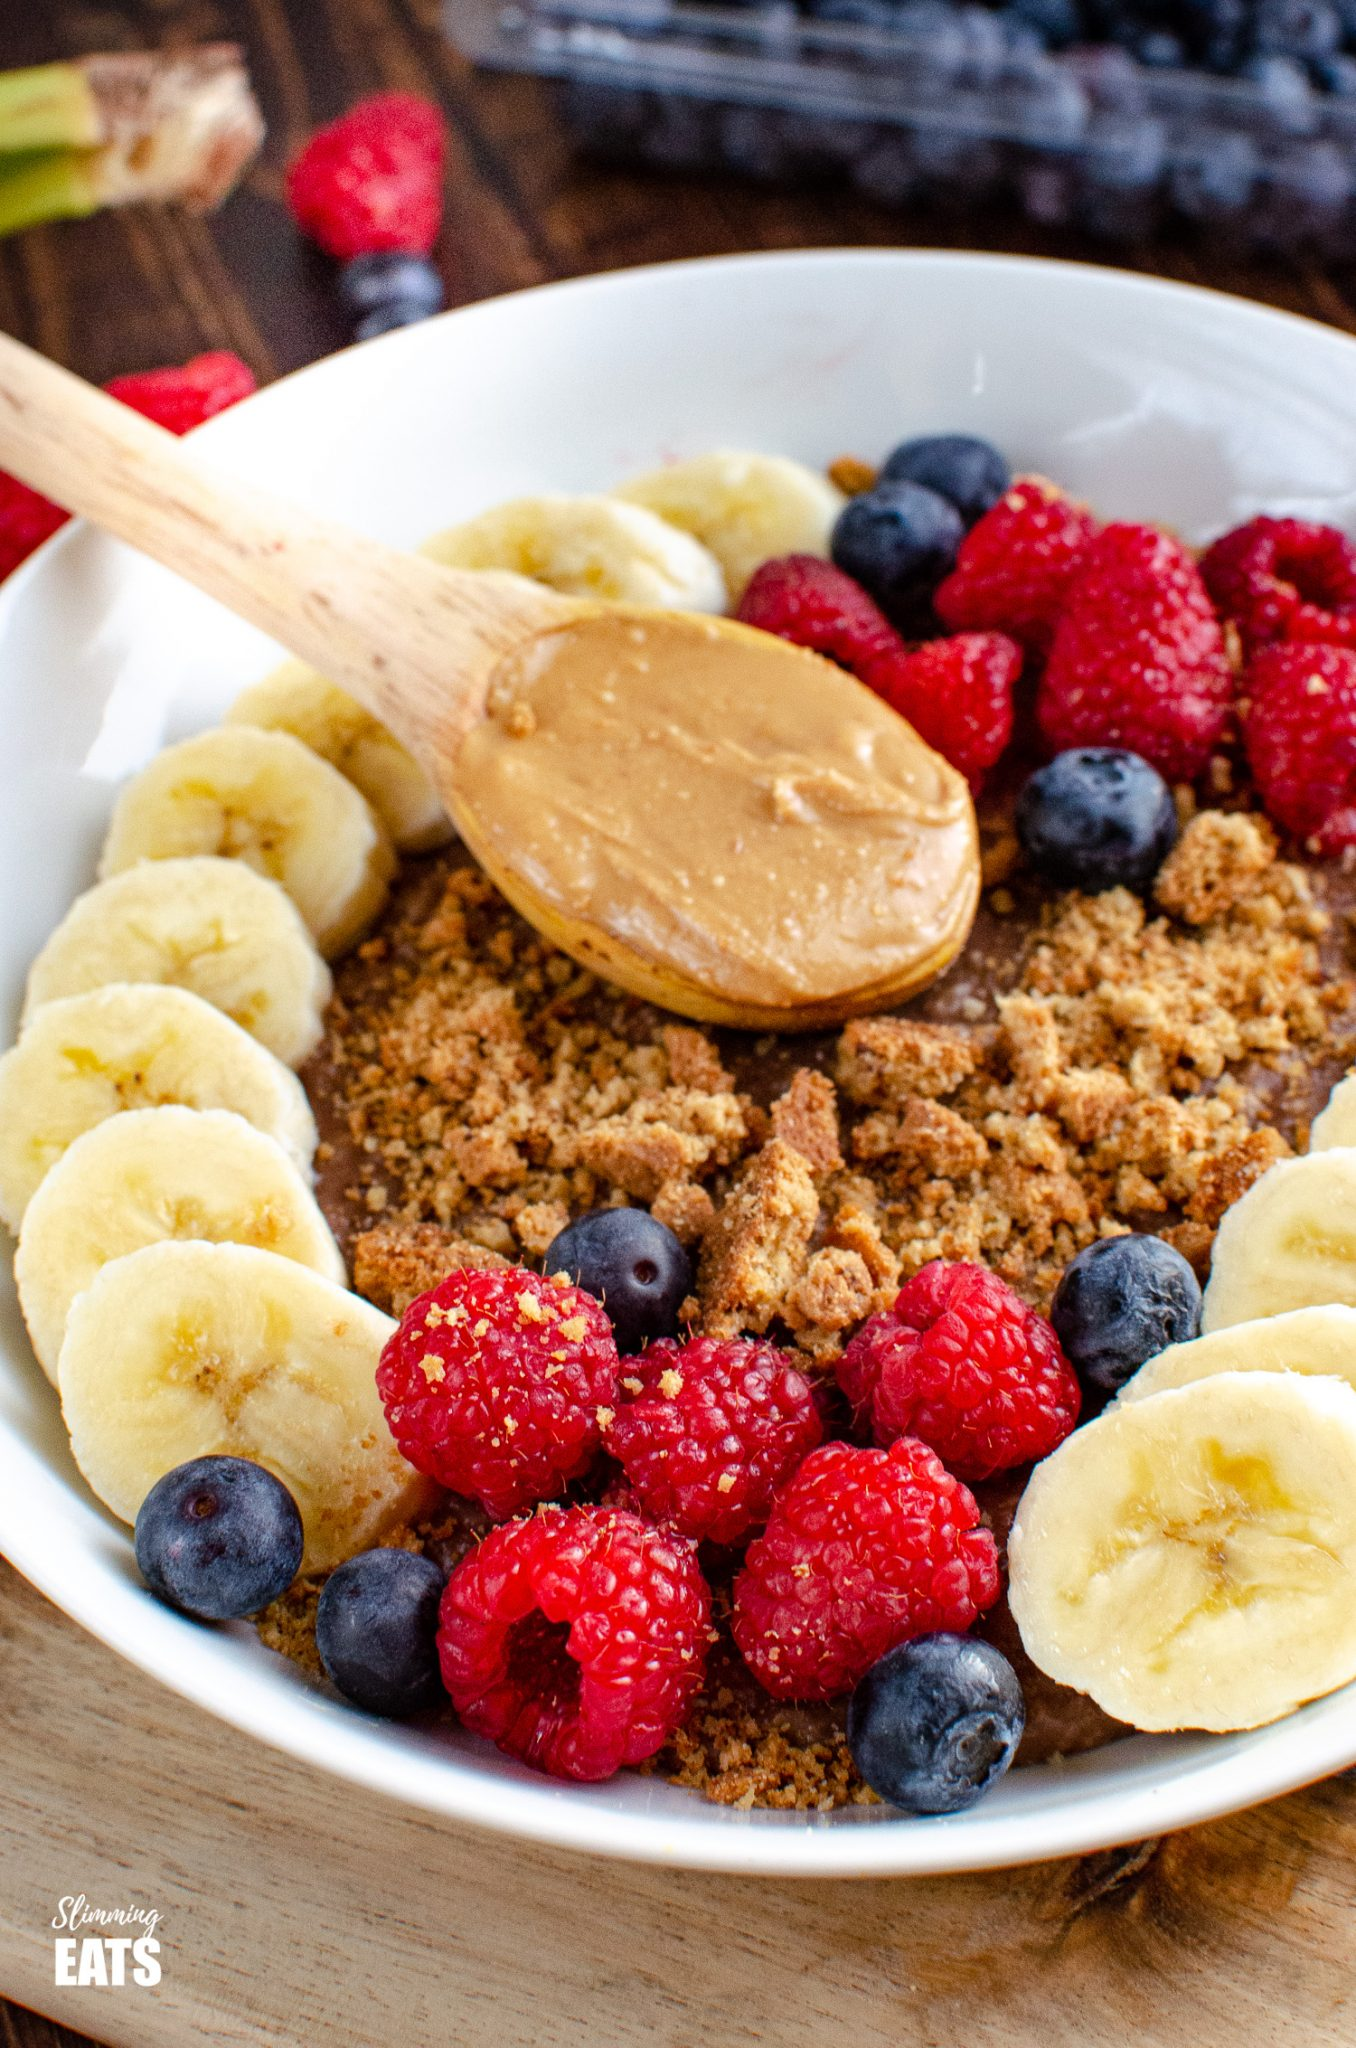 Chocolate Peanut Butter Oatmeal in white bowl with wooden spoon of peanut butter, slices of banana, raspberries, blueberries and a mini crumbled cookie